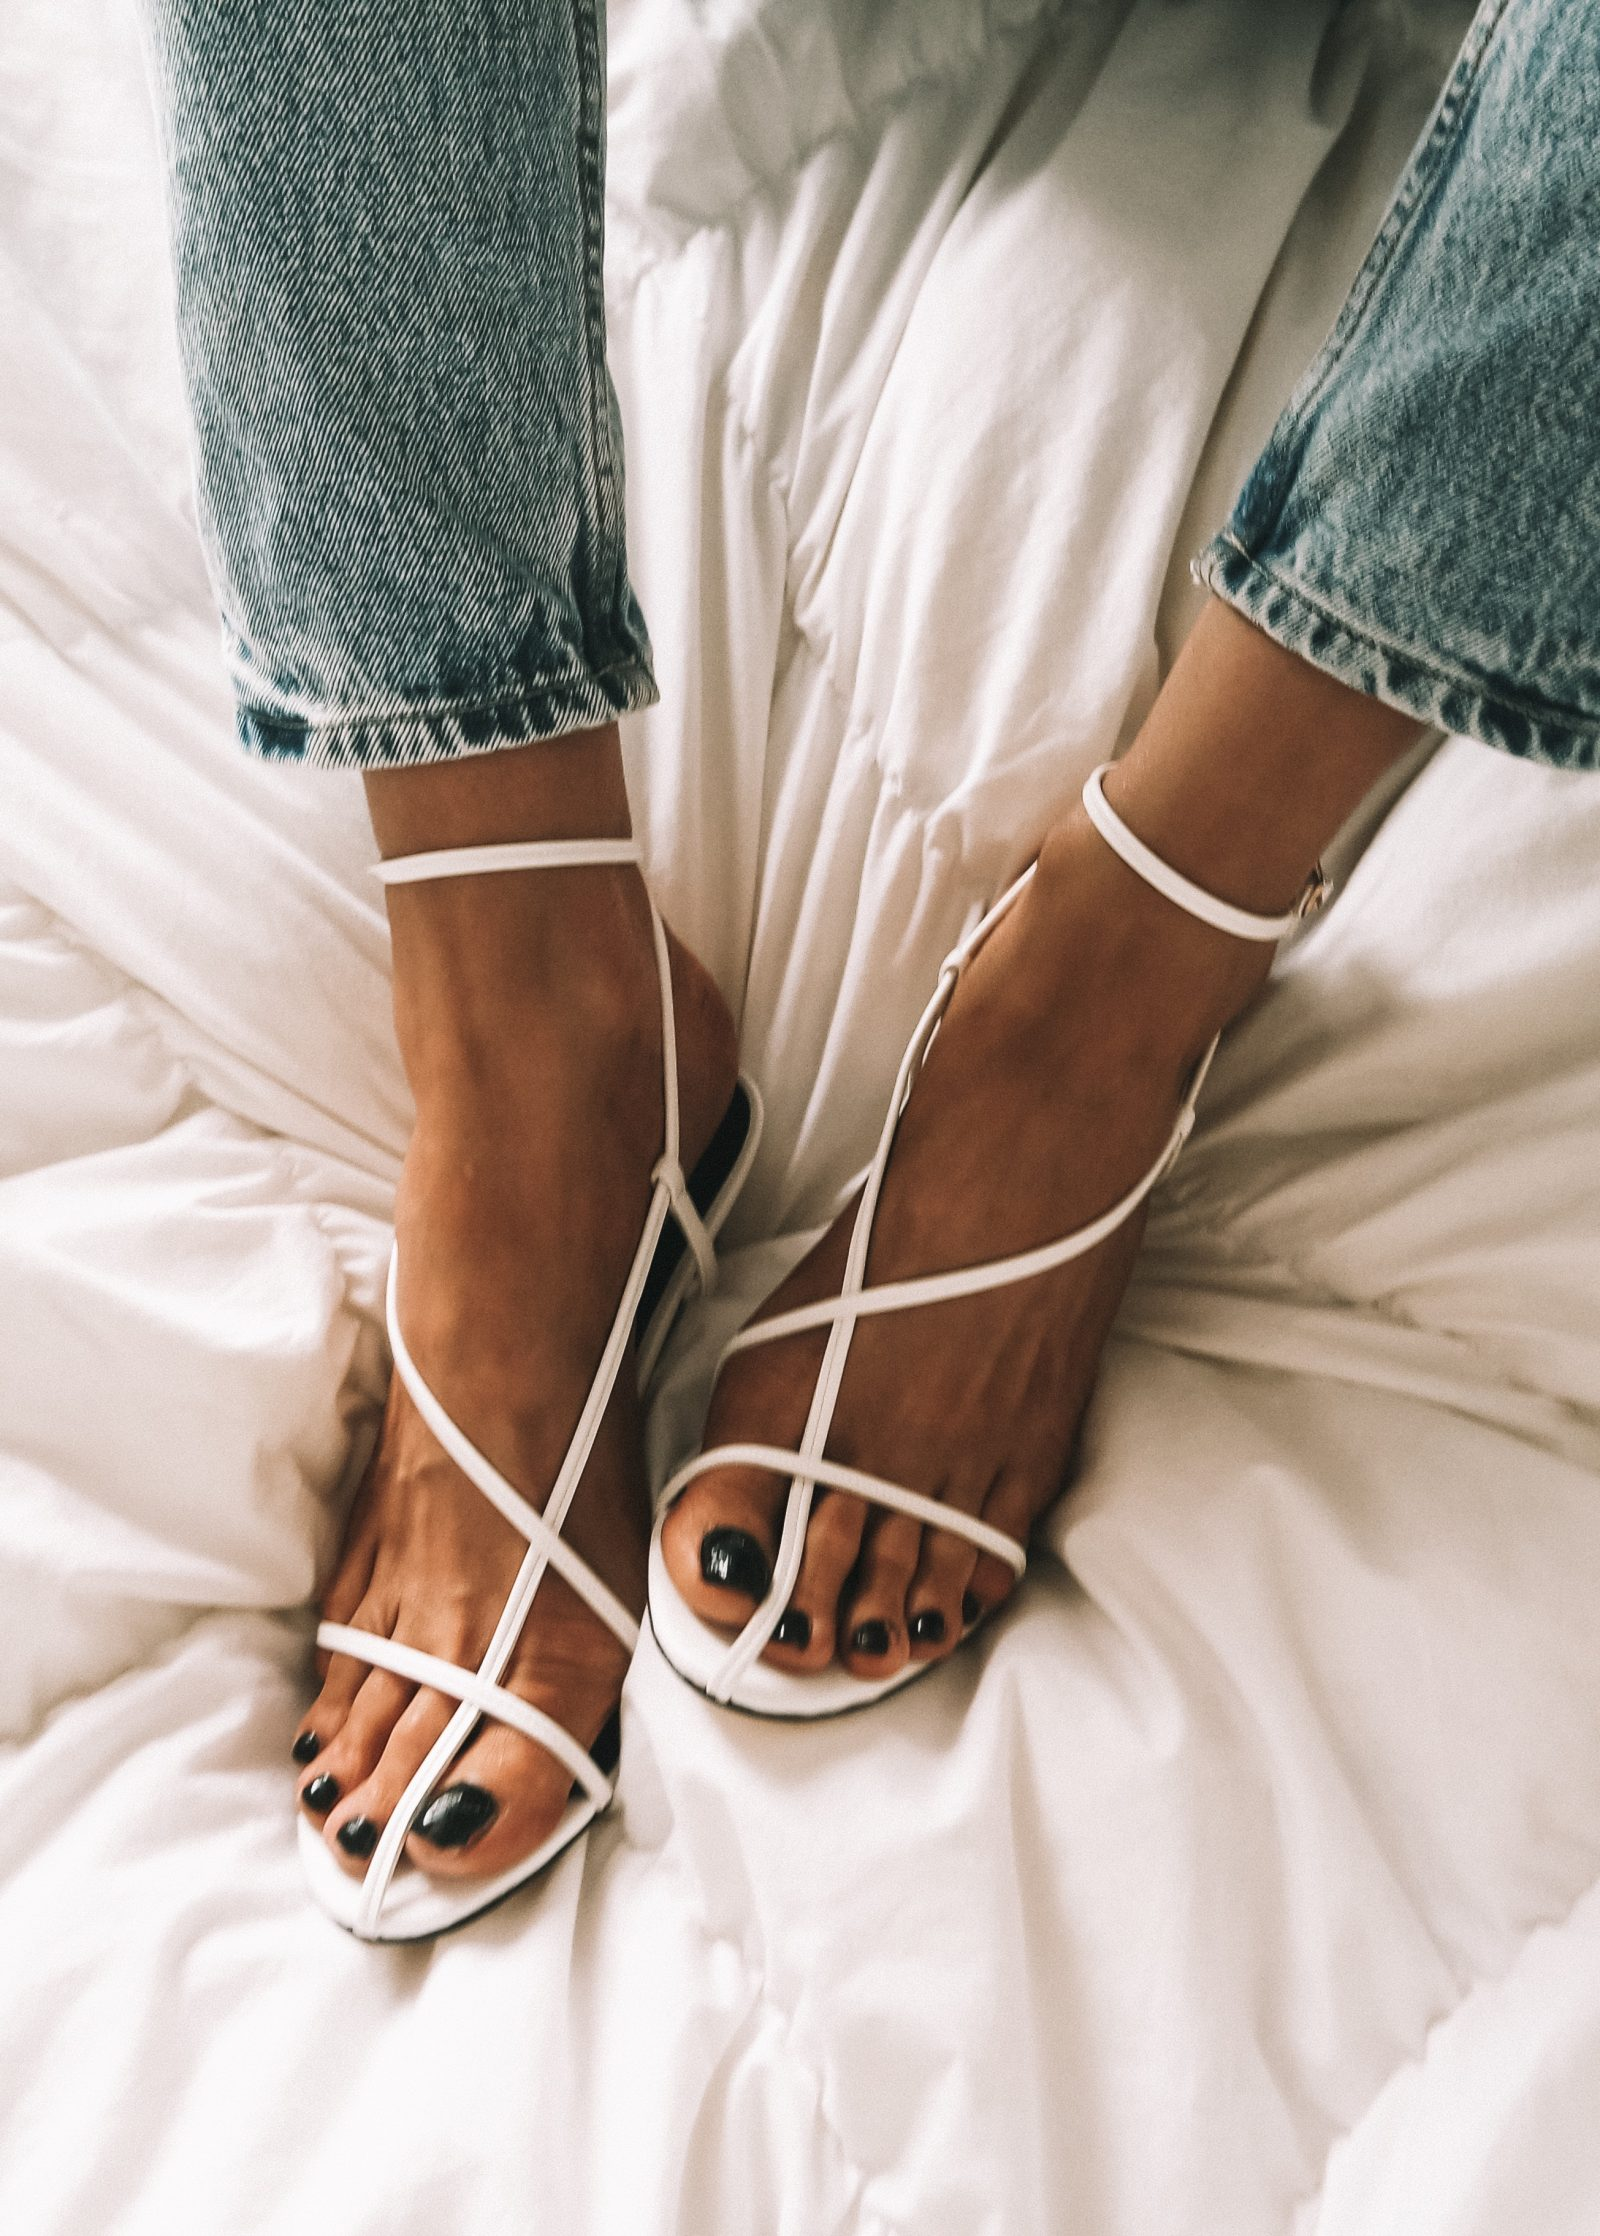 Revolve White Cage Shoes - Fashion Blogger Sinead Crowe